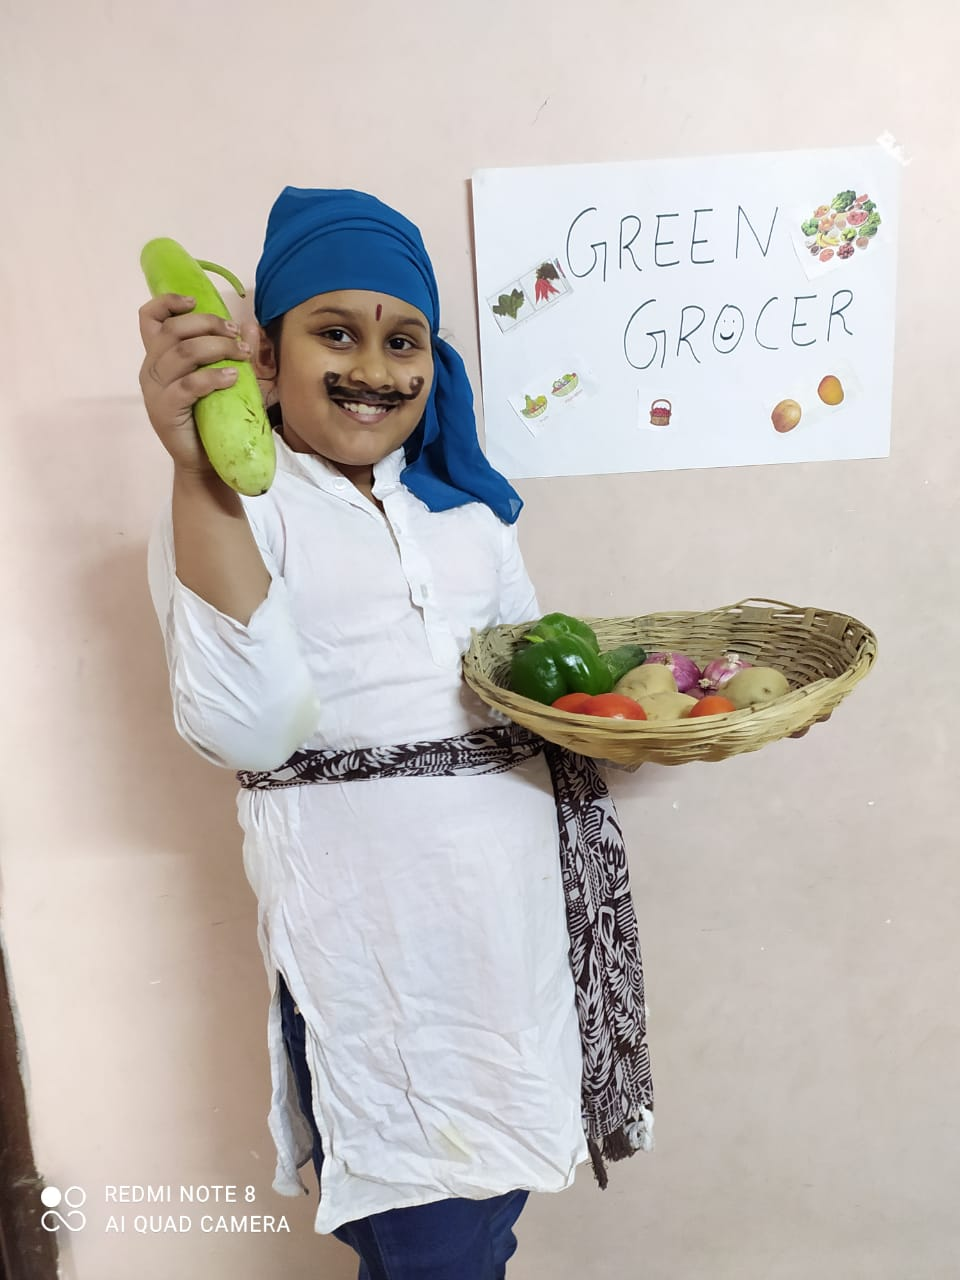 REPORT ON'GREEN GROCERS' ACTIVITY